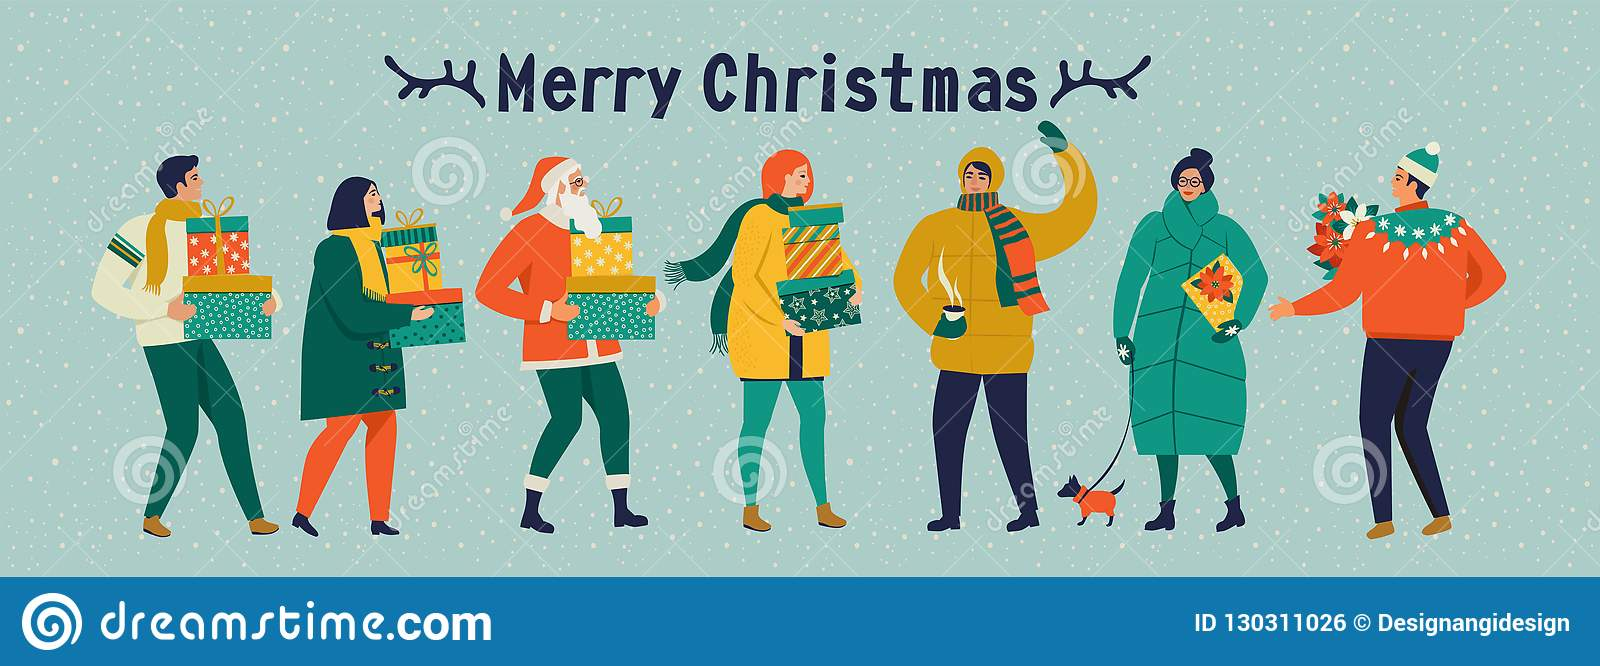 Merry Christmas and happy New year vector greeting card with winter games and people. Celebration template with playing cute peopl